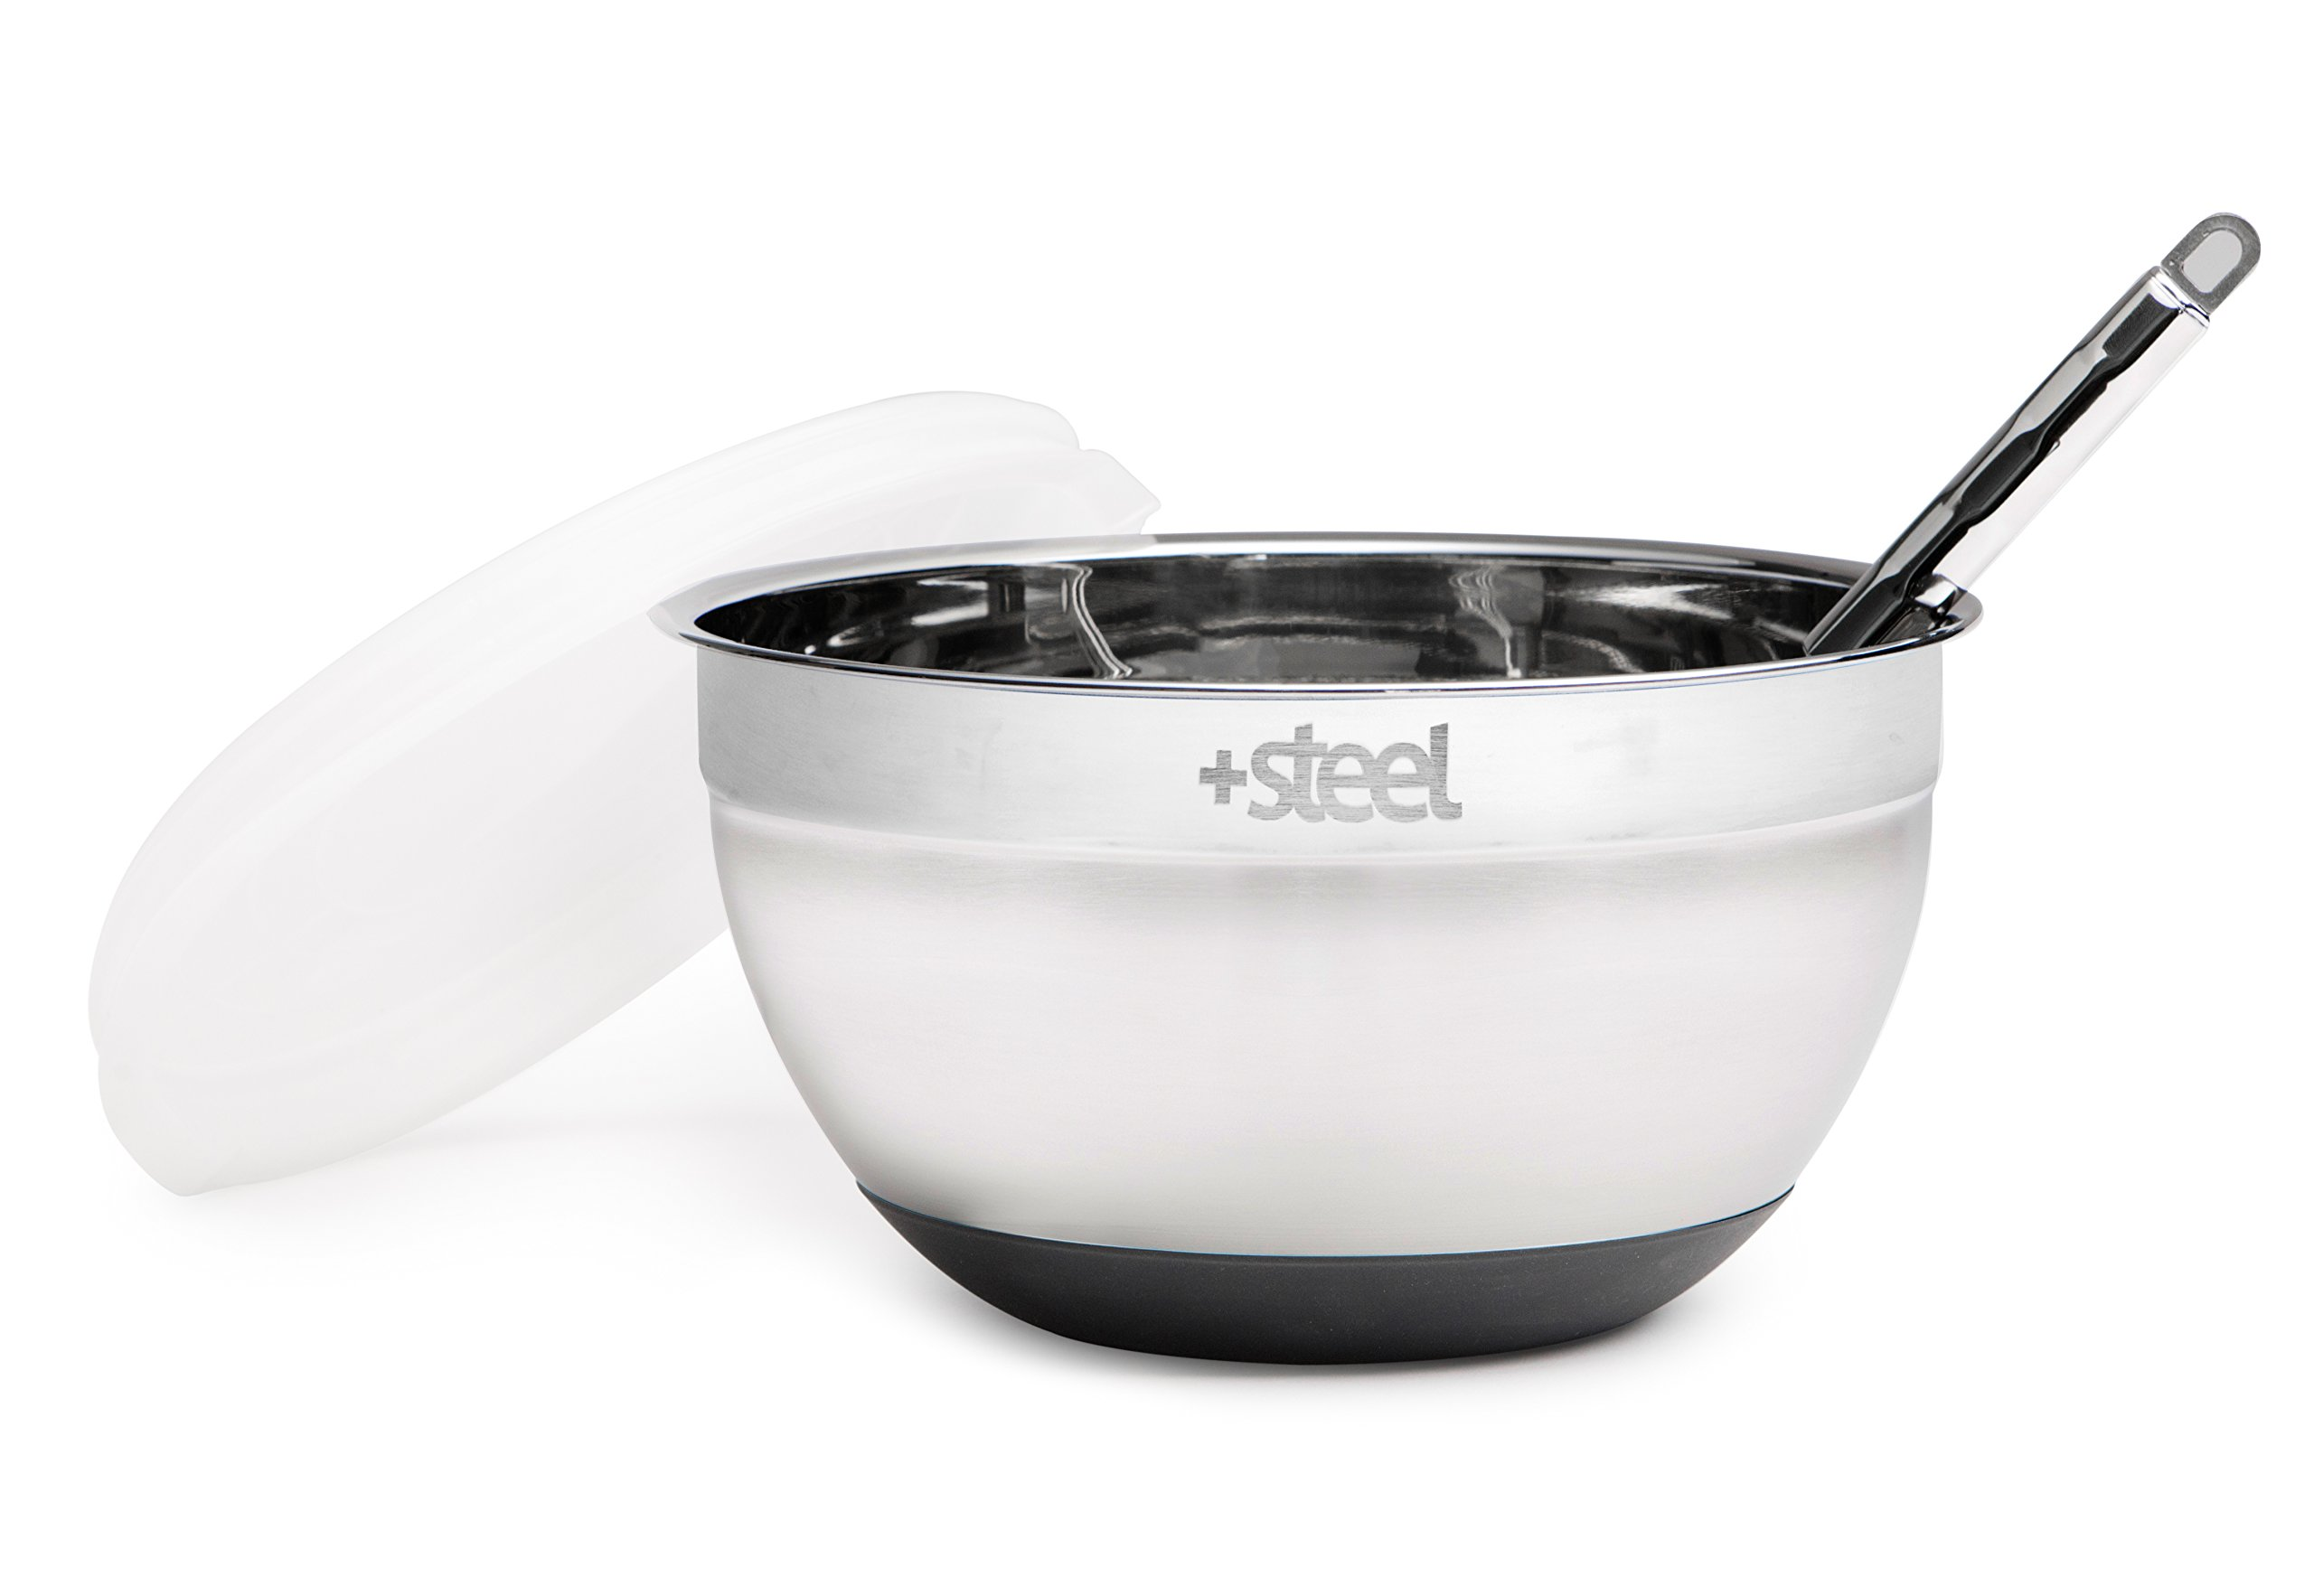 +Steel Stainless Steel Non-Slip Mixing Bowl Set of 4 with Lids and Whisk by +Steel (Image #2)